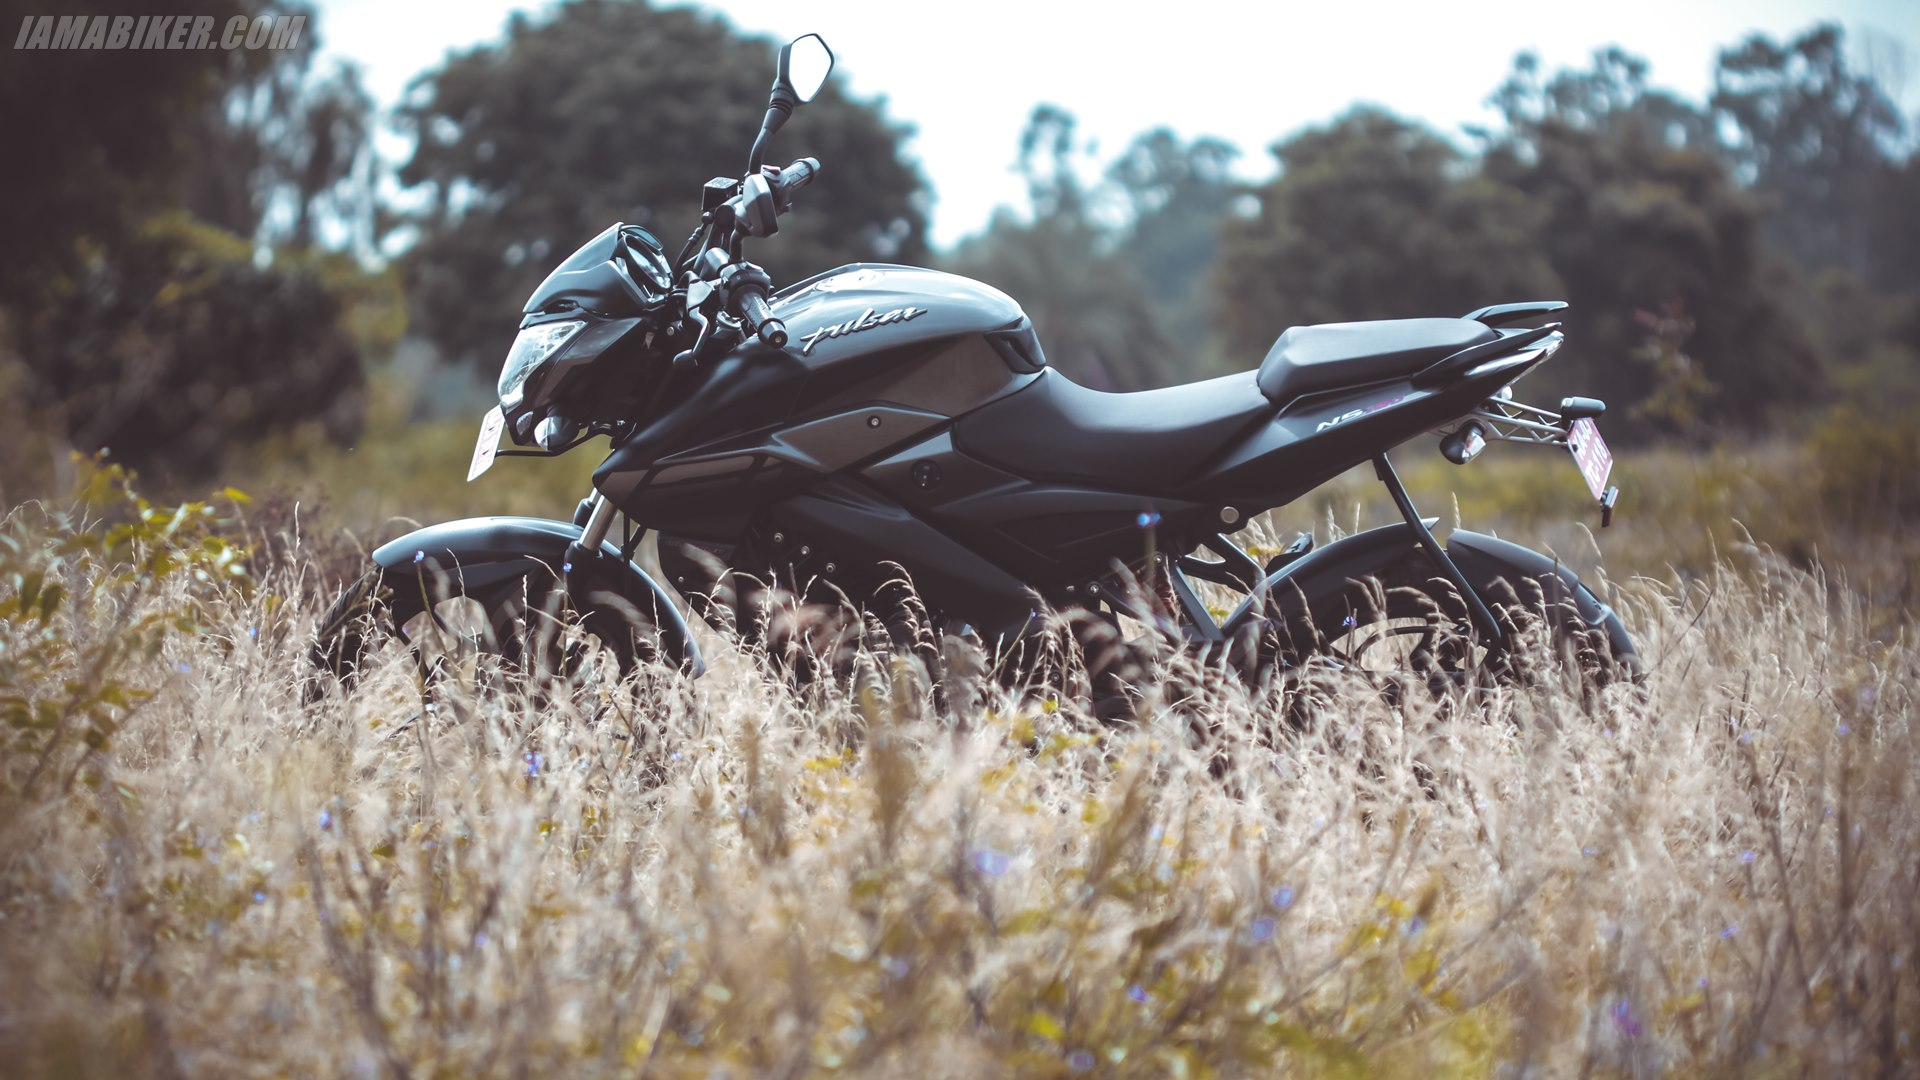 Pulsar NS 160 HD wallpapers | IAMABIKER - Everything ...